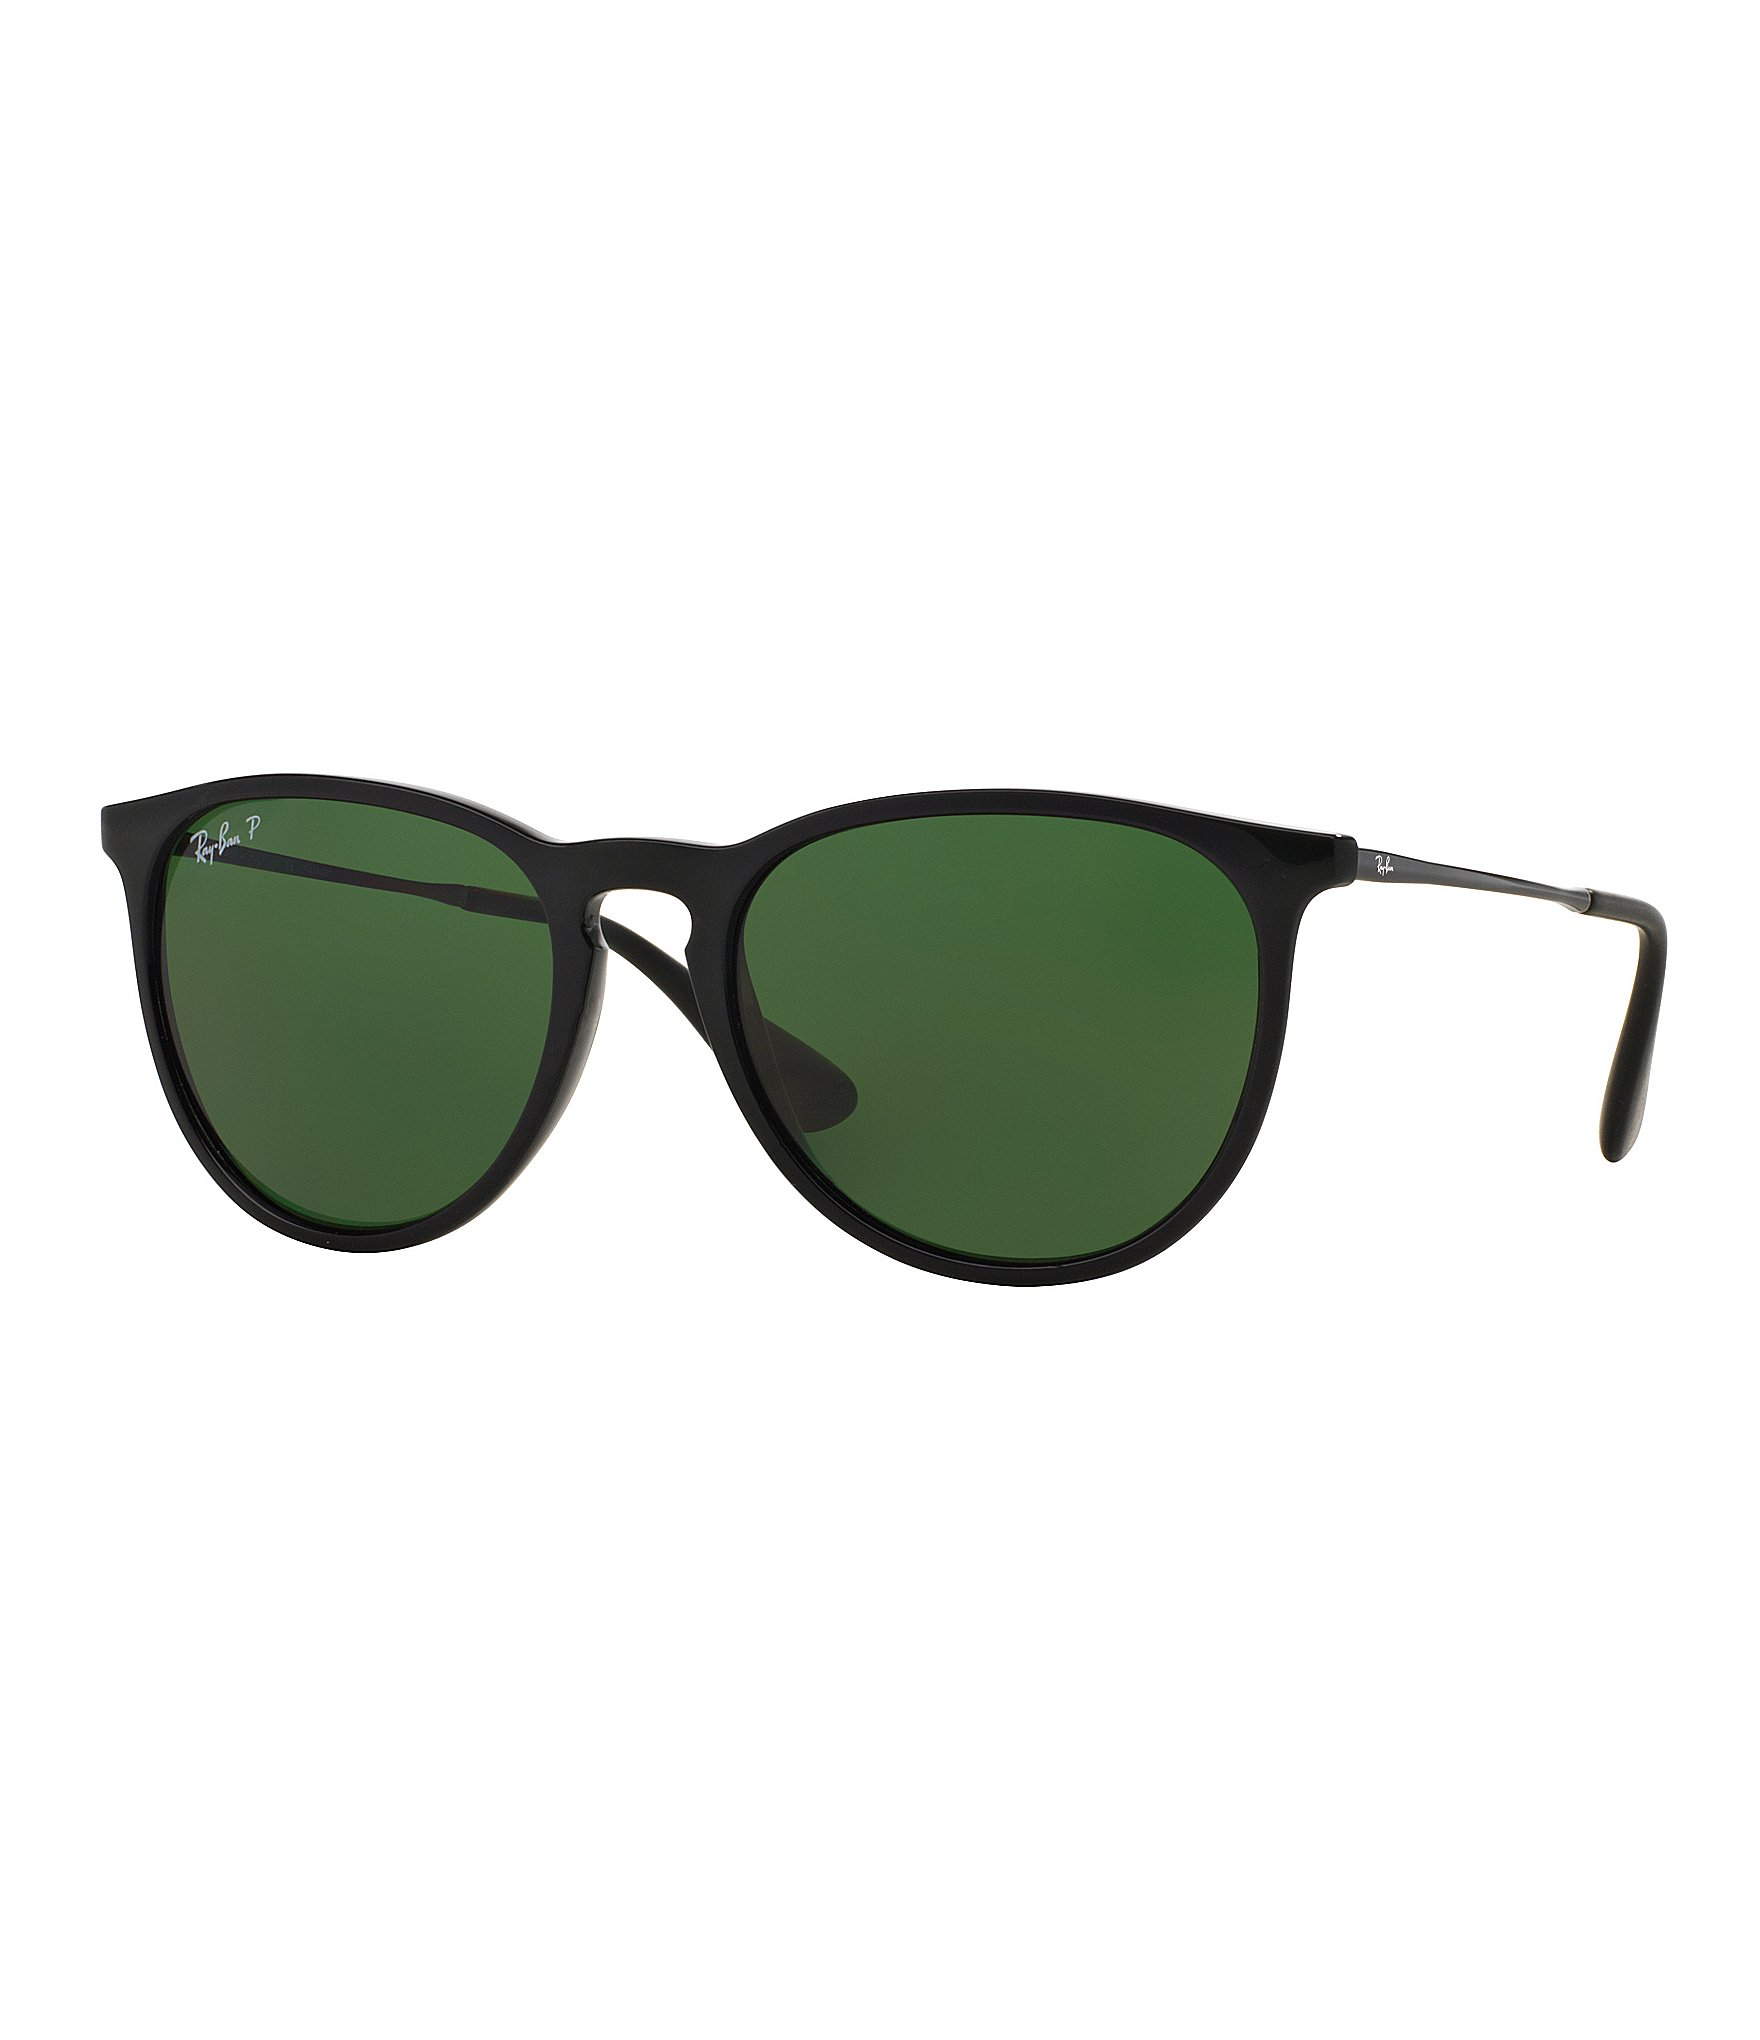 dc3c8c9848 Ray-Ban Men s Polarized Sunglasses